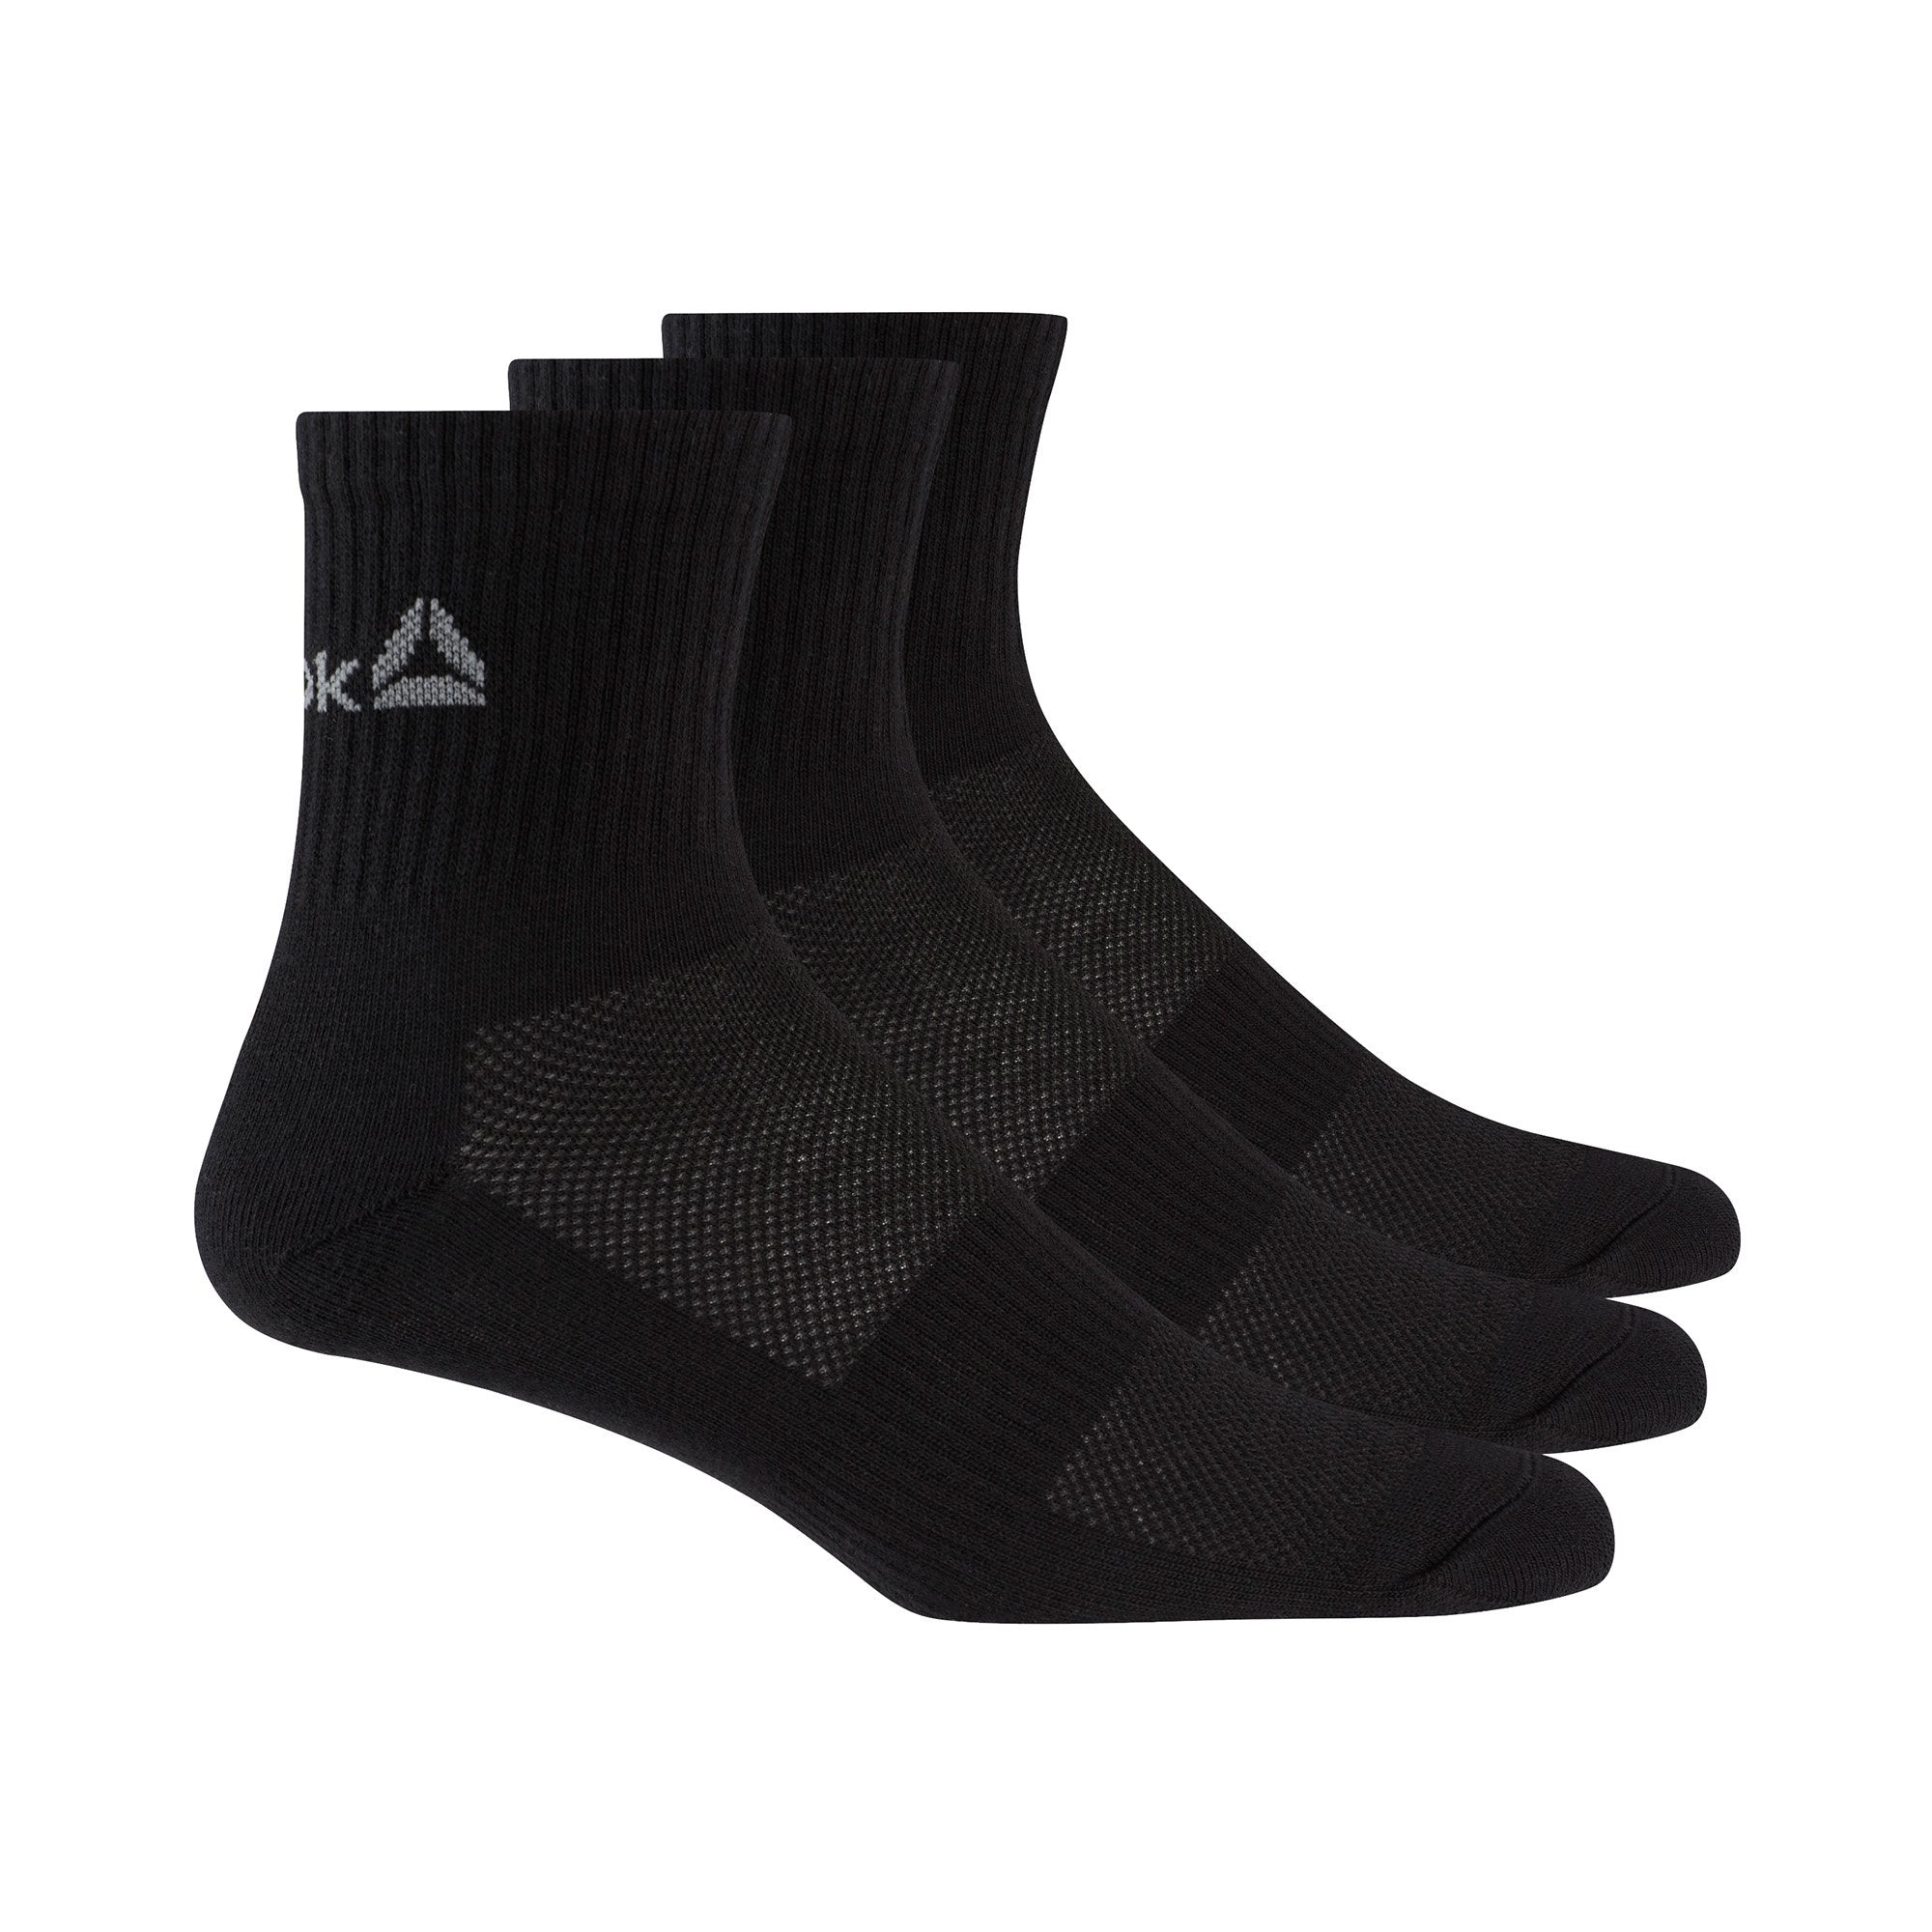 f23af5ac Buy Reebok Active Foundation Mid Crew Training Socks Black Online in  Singapore | Royal Sporting House